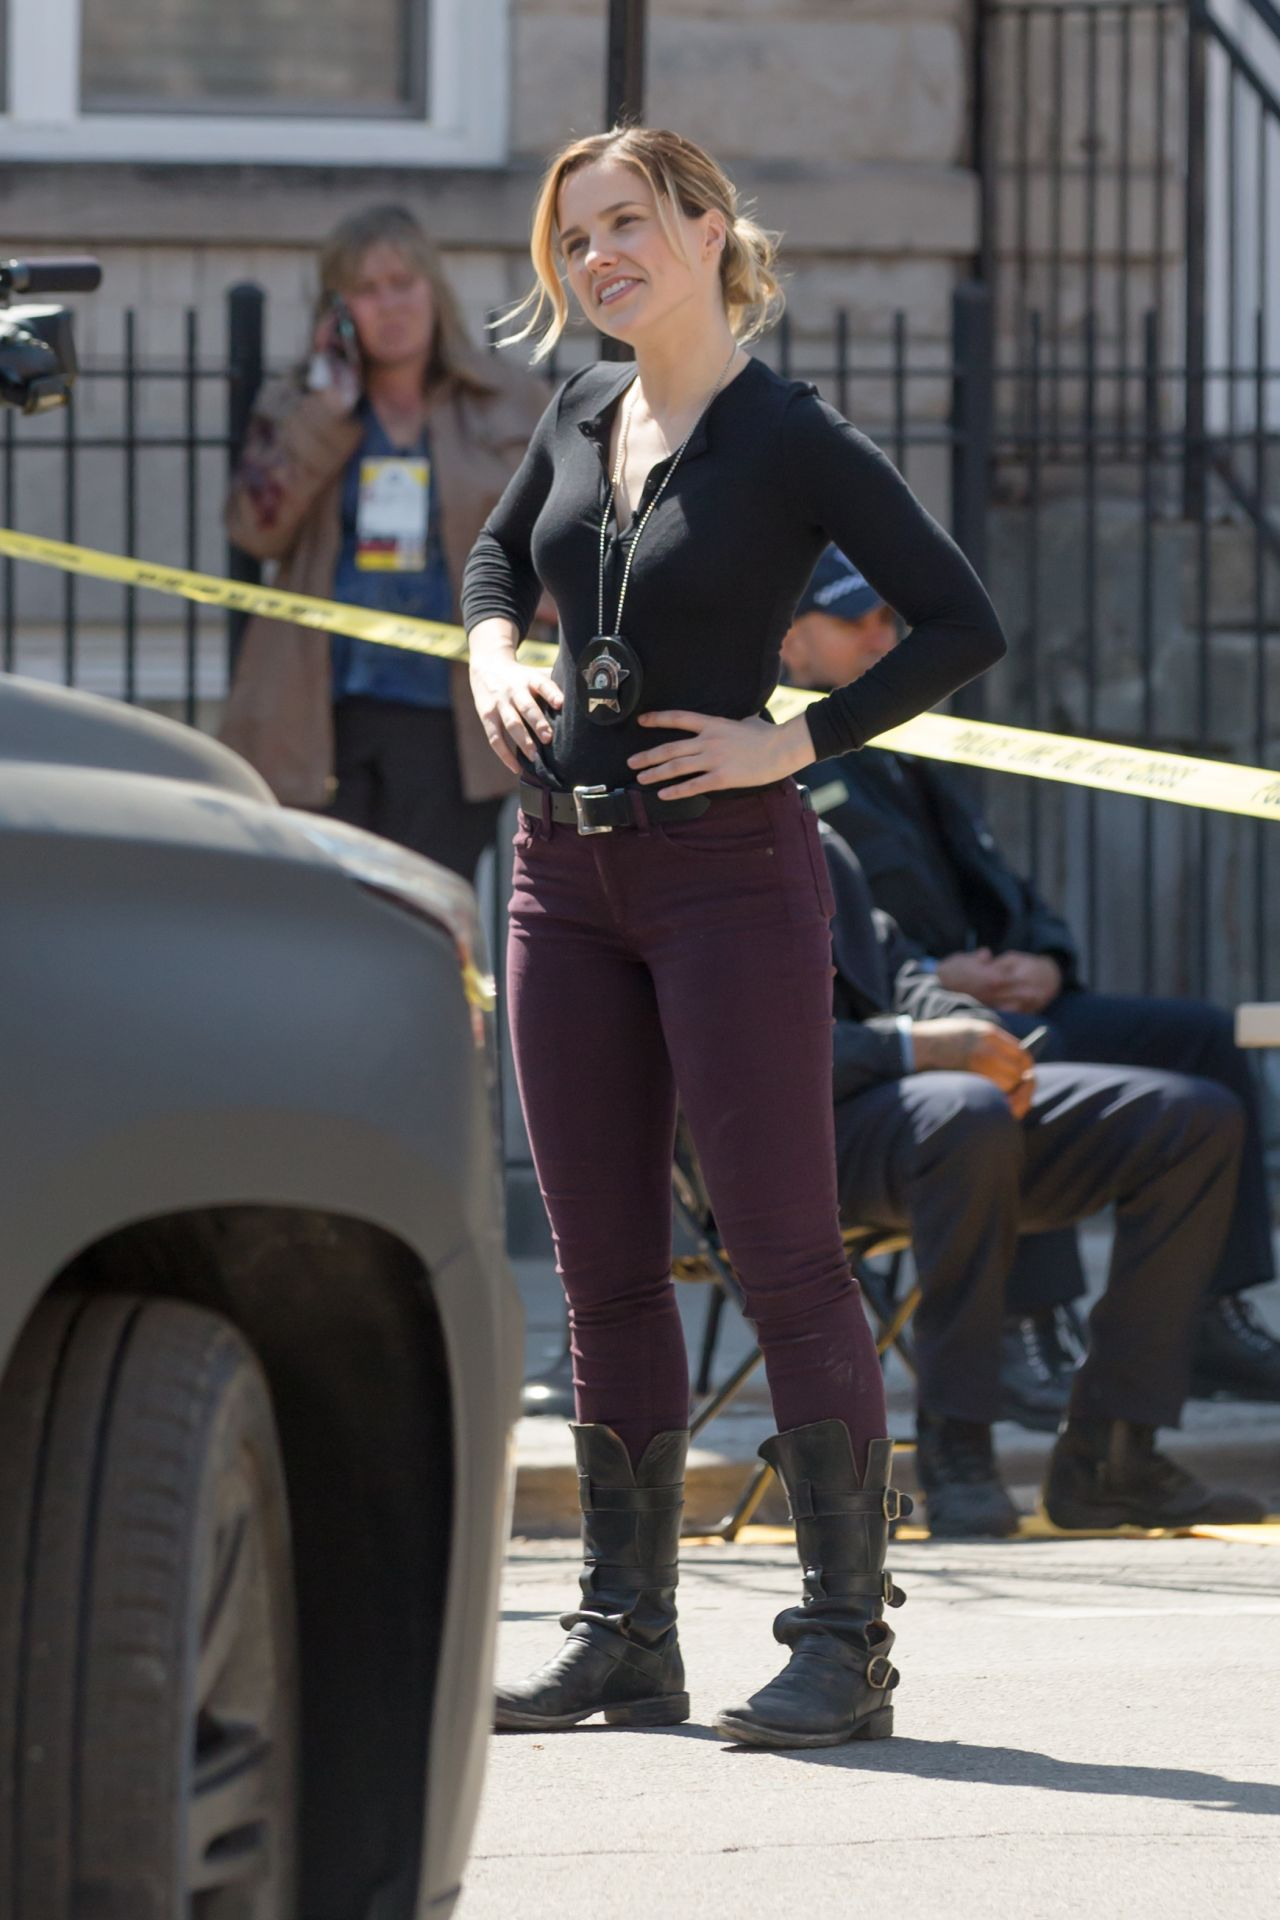 Sophia Bush On the Set of 'Chicago PD' in Chicago, April 2015